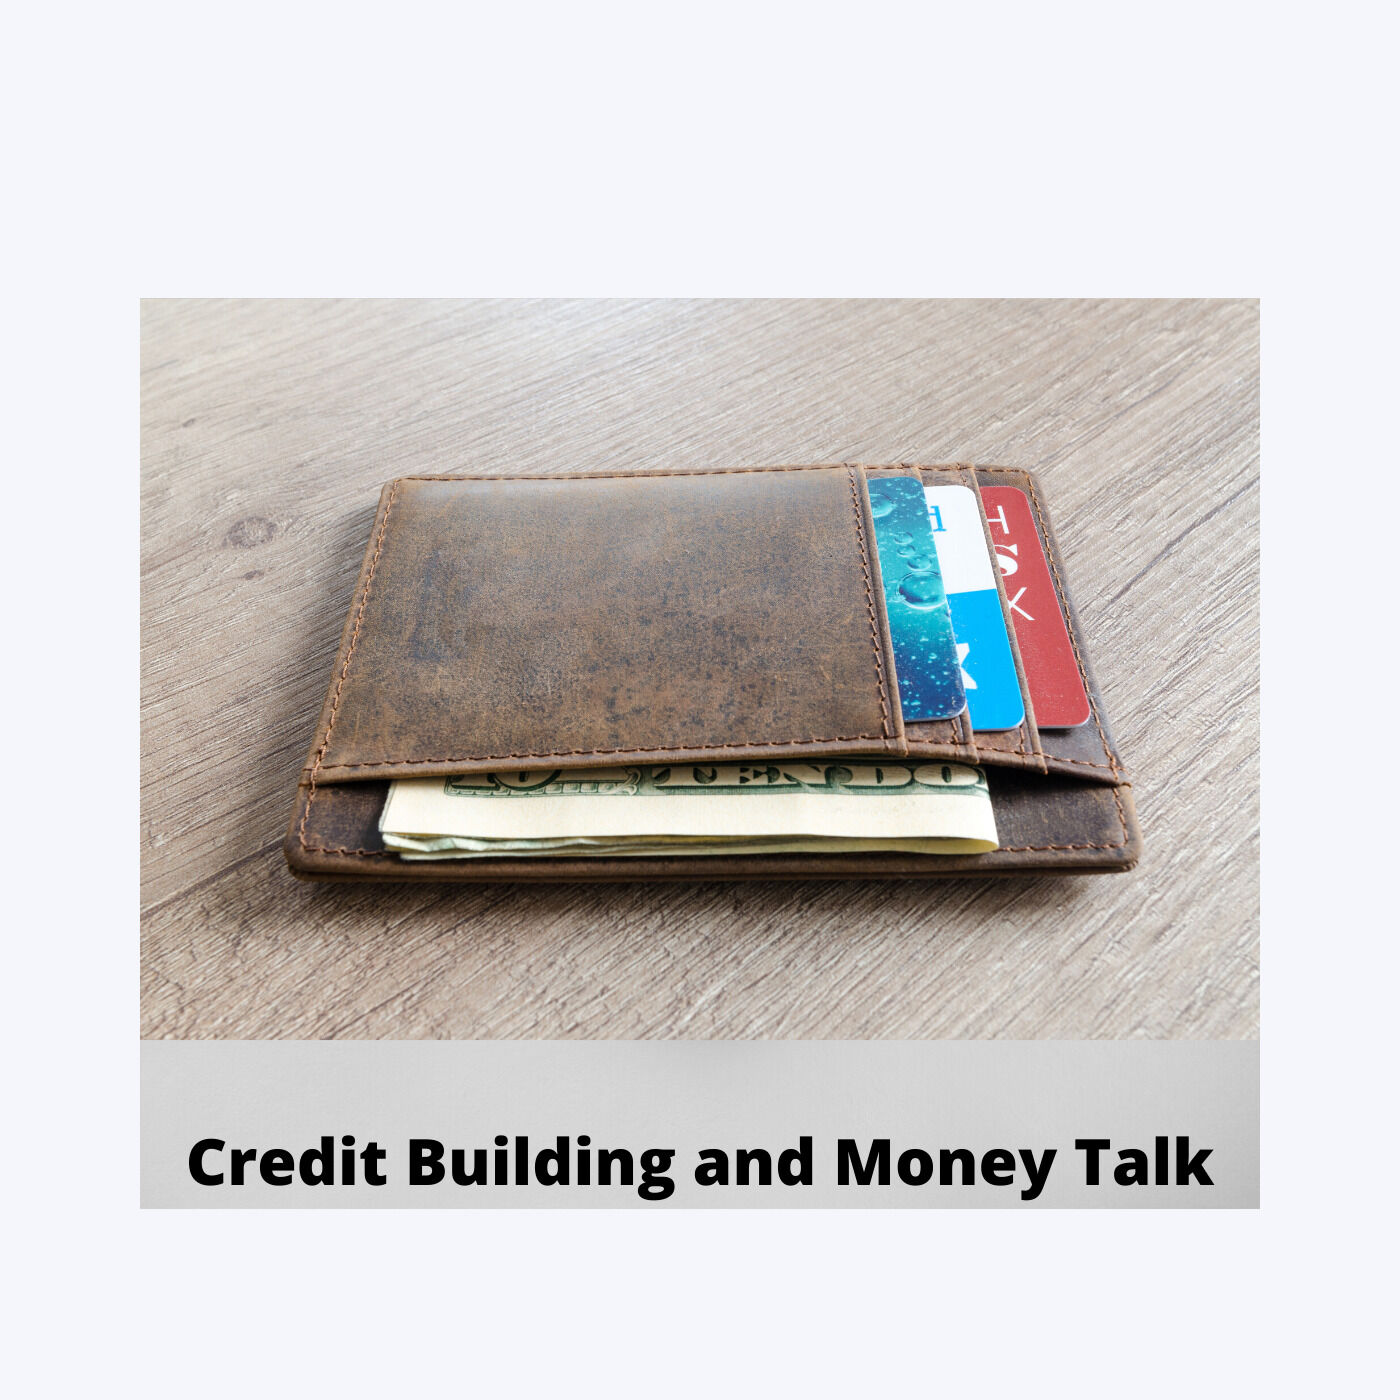 Credit Building and Money Talk